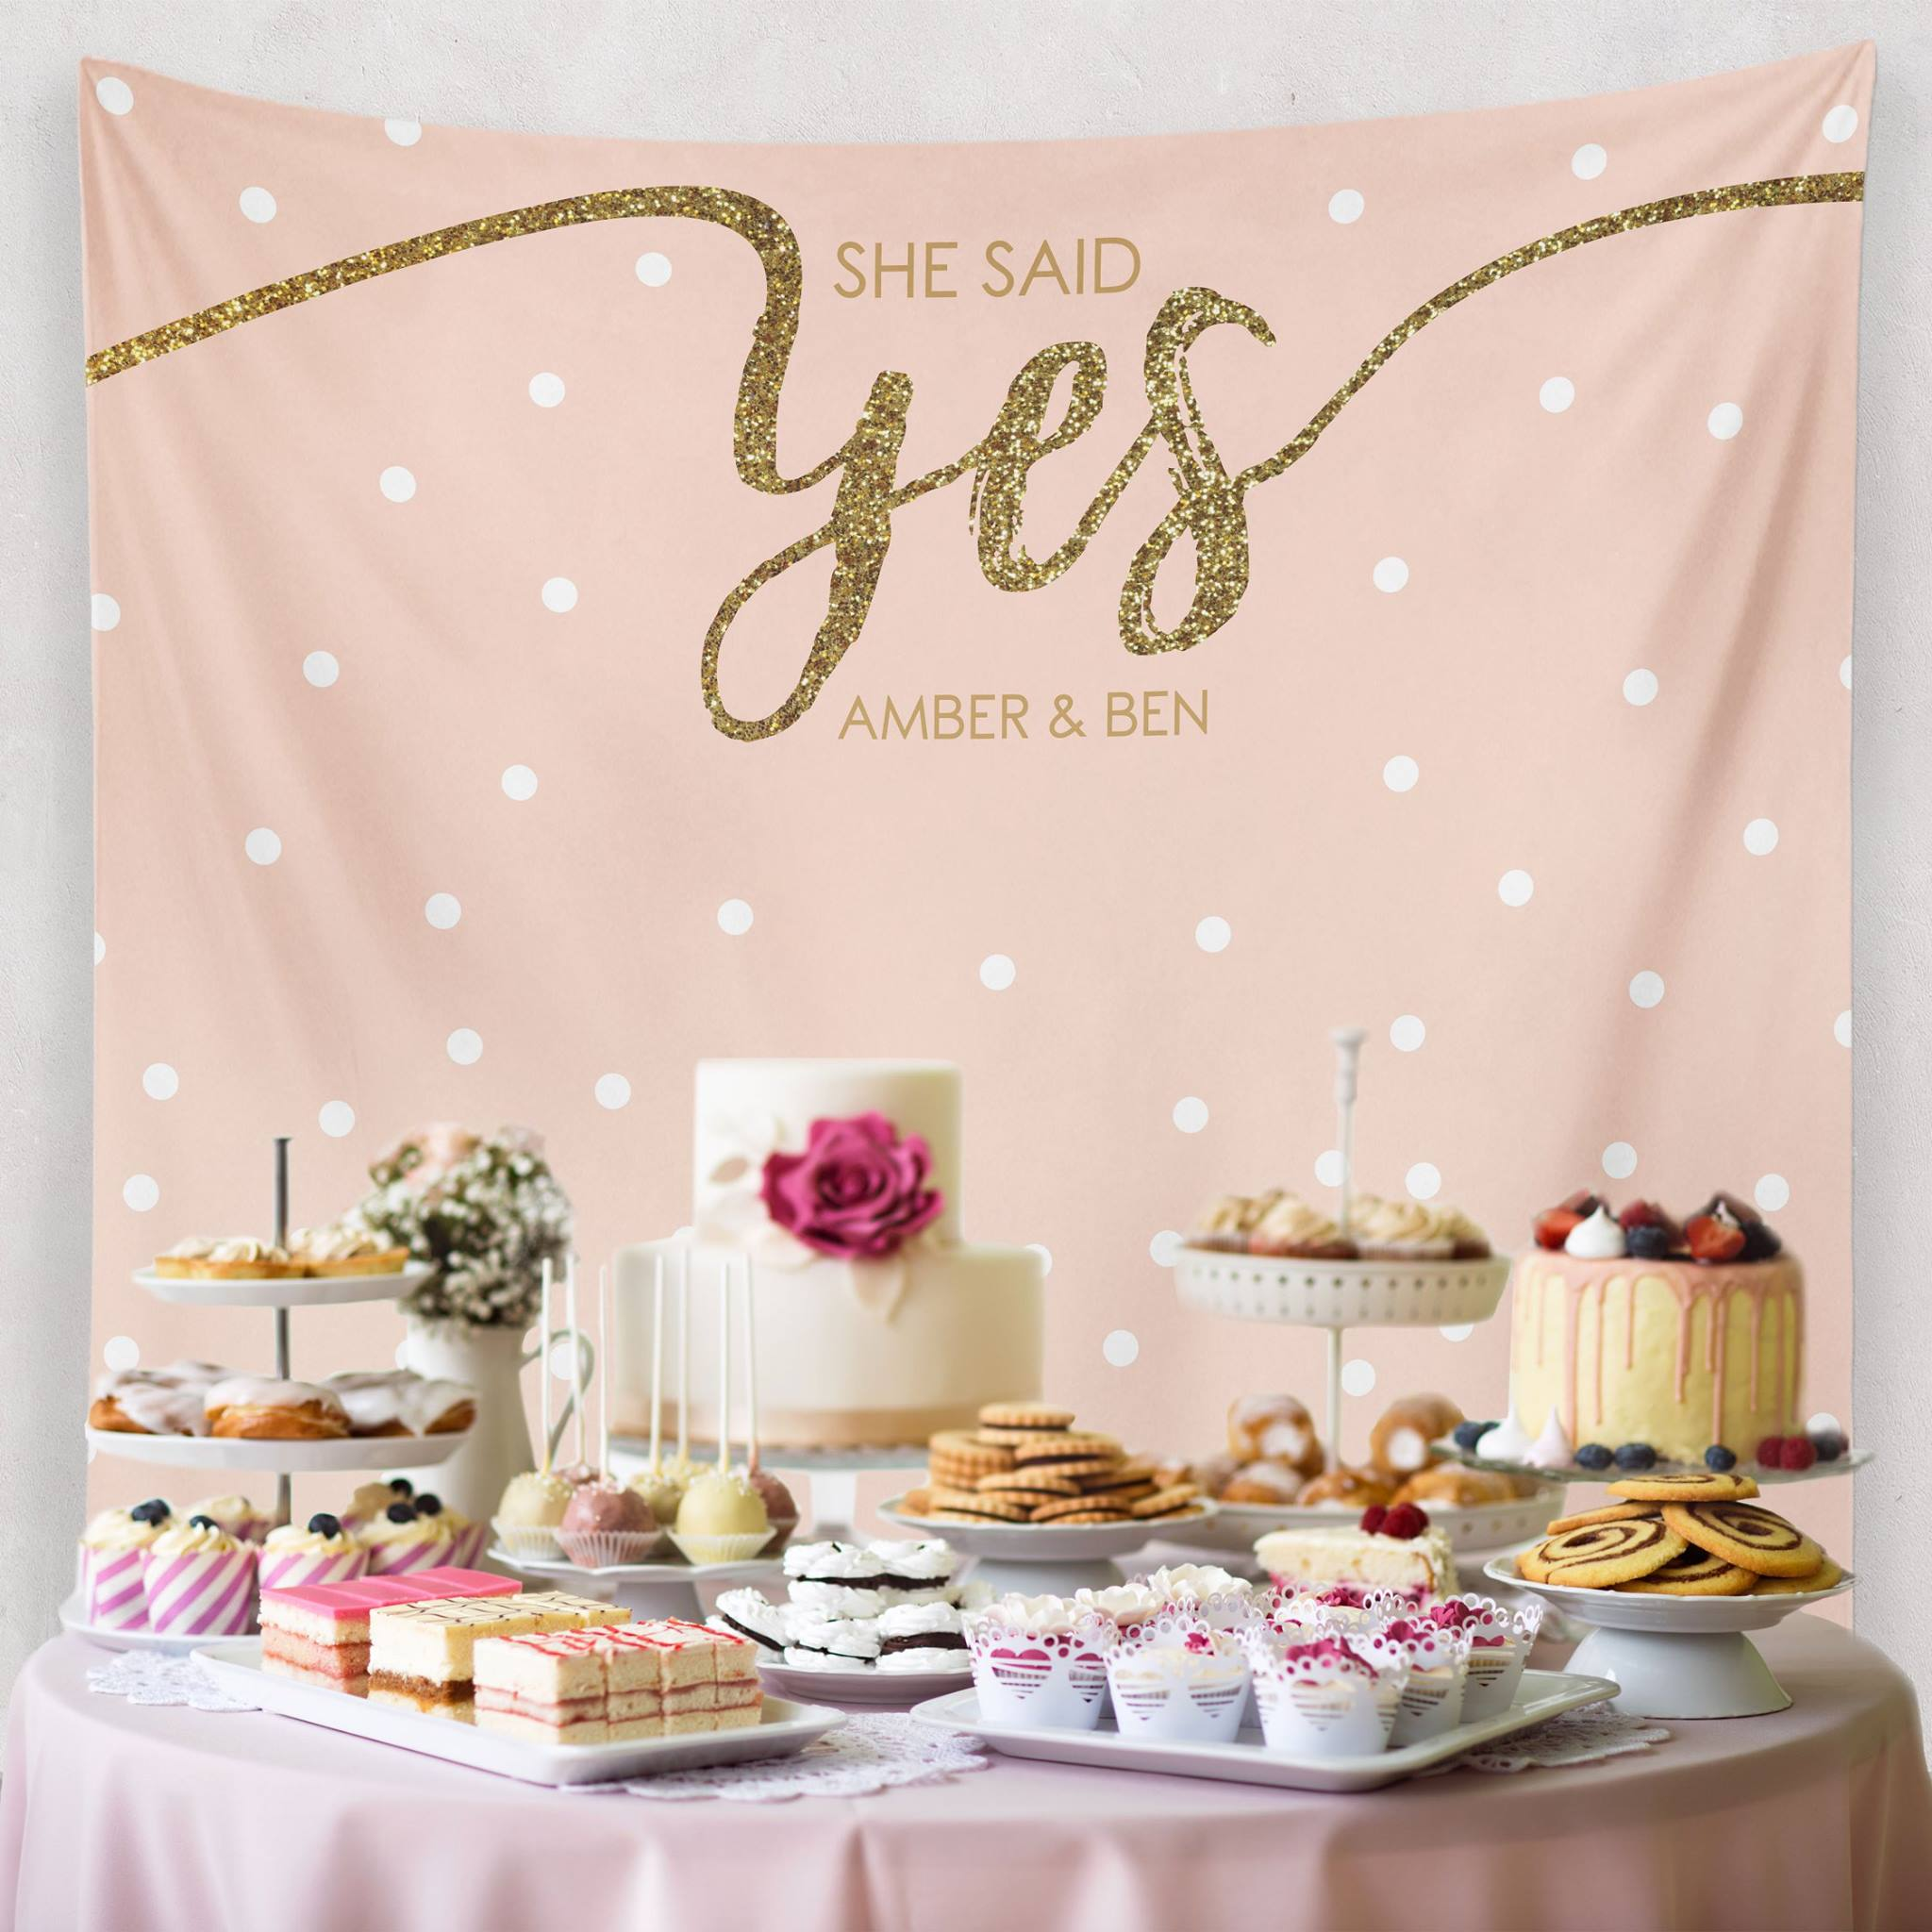 She Said Yes Gold Wedding Decoration - Custom Wedding Tapestries Dessert Table Backdrops and Photo Booth Backgrounds - Bridal Shower Banner Decoration - as seen on www.BrendasWeddingBlog.com